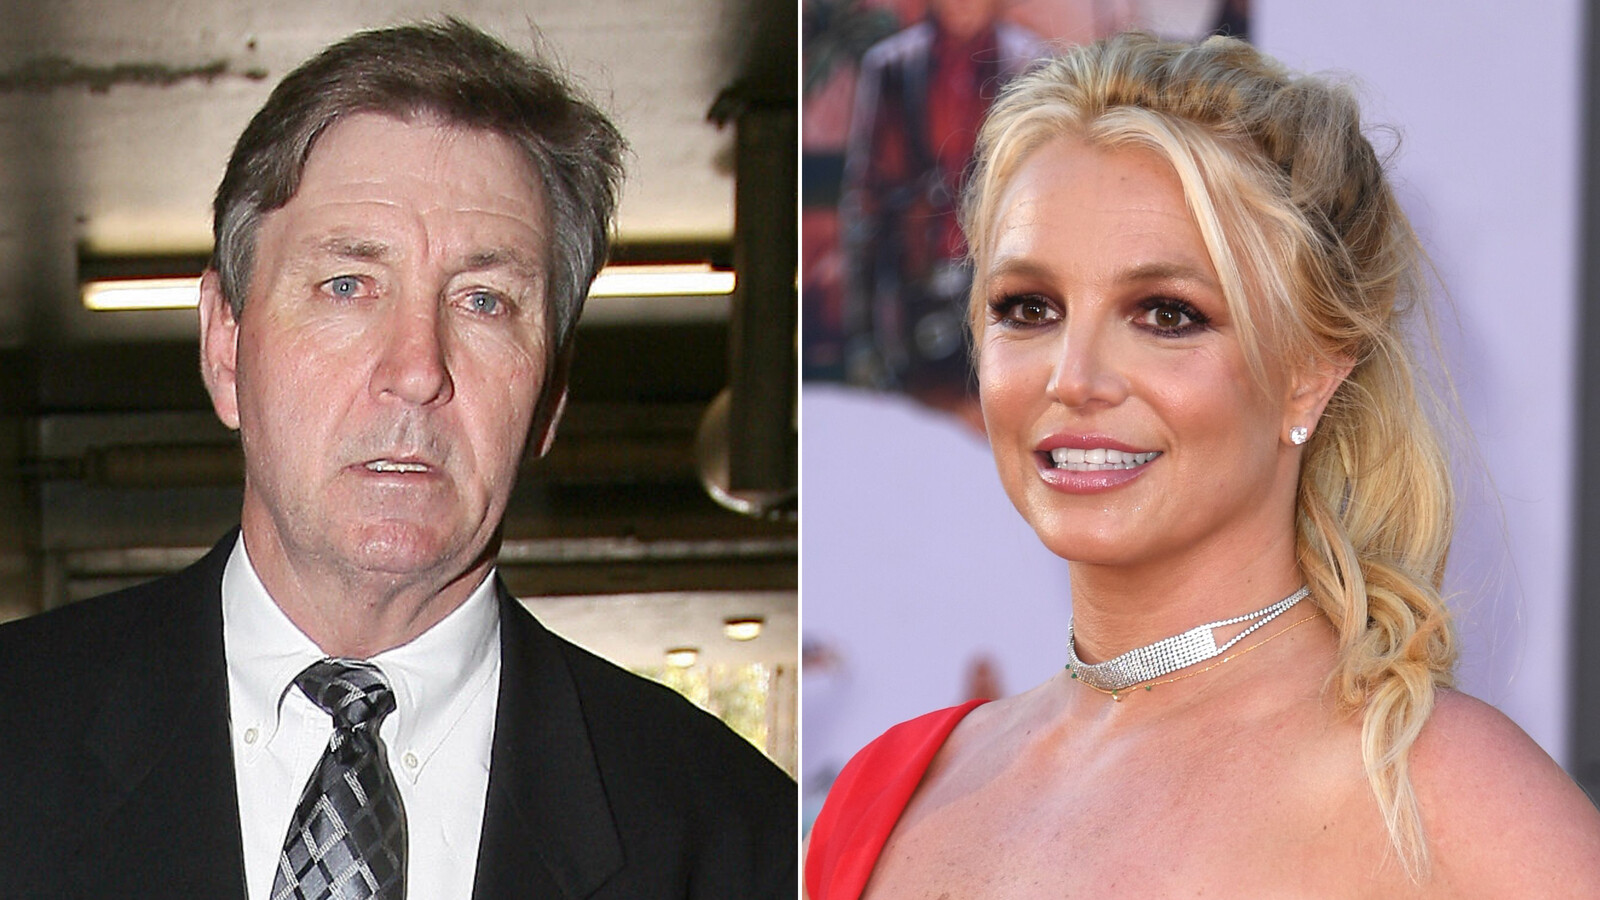 Britney Spears' lawyer requests her father resign as conservator without payout